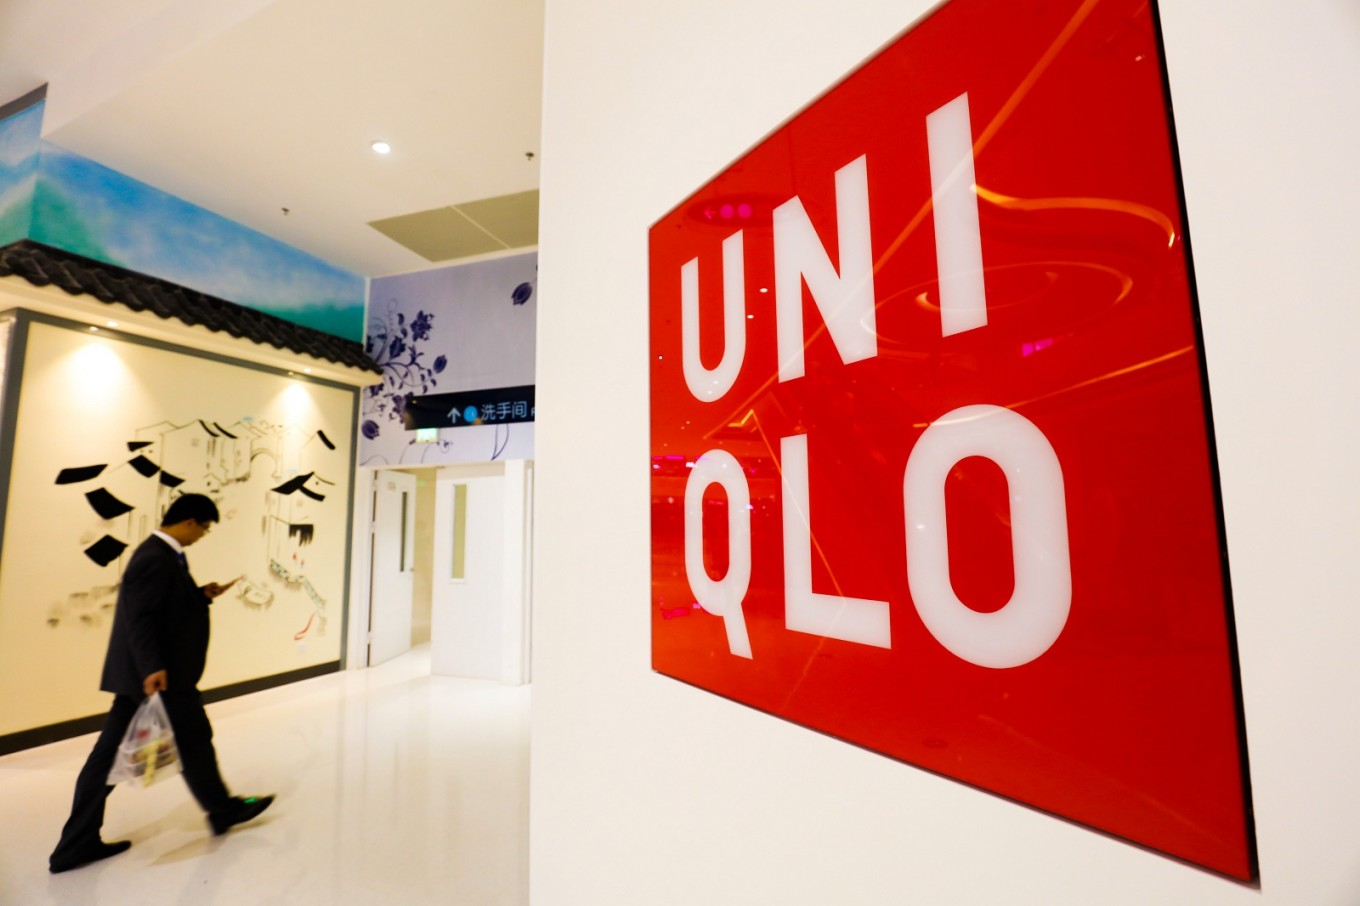 Uniqlo Indonesia to open new stores in West Java, Kalimantan